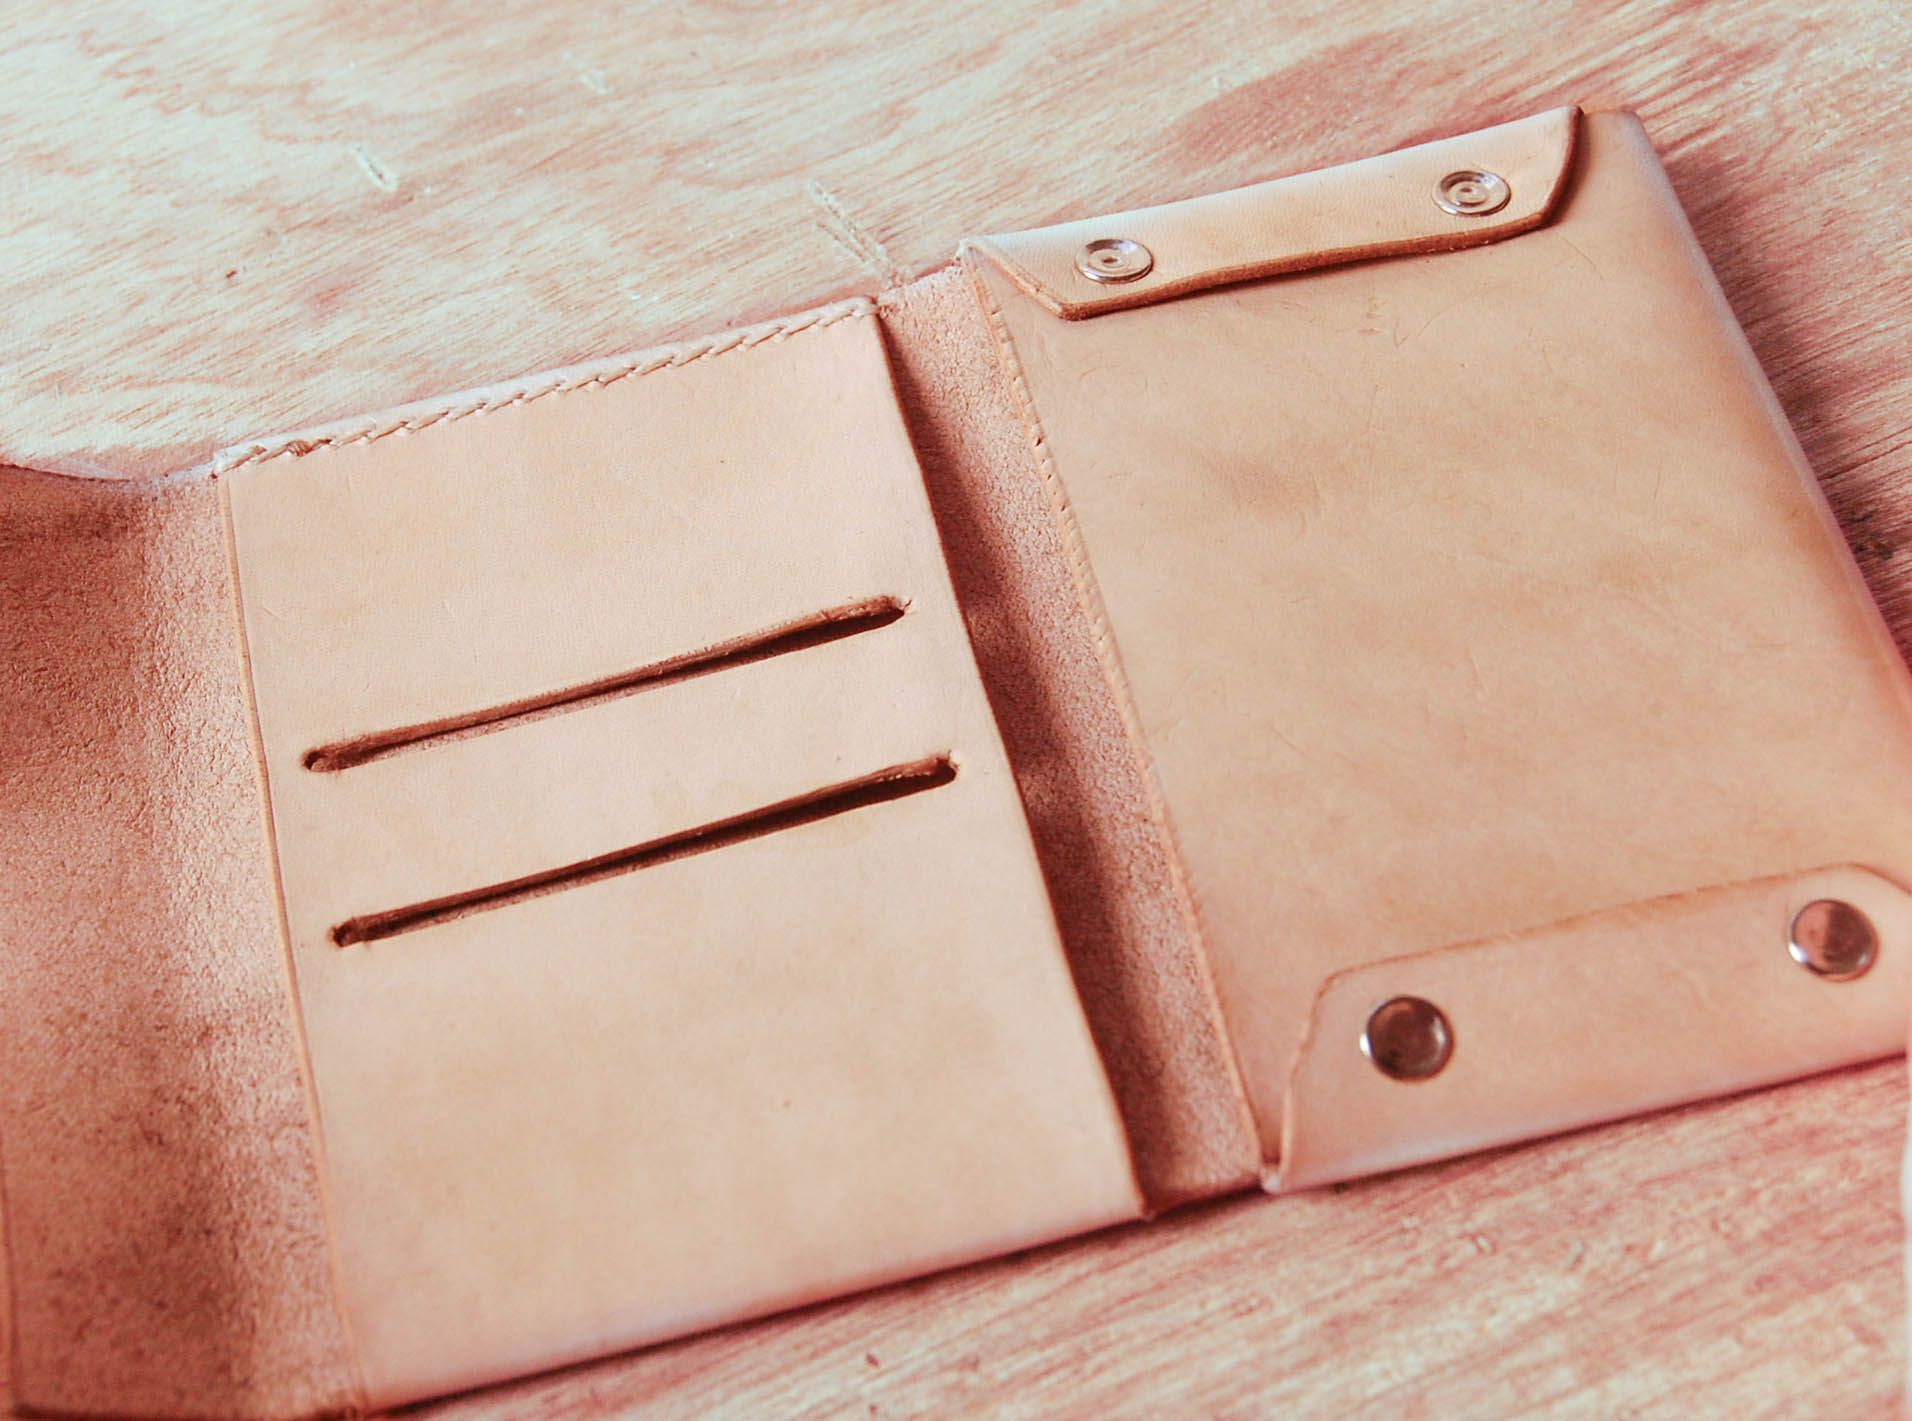 Leather Crafts By Unimi Are Hand Sewn Veg Items Like Wallet Pack Bag Business Card Holder Portfolio Accessories Perfect Gift For Men